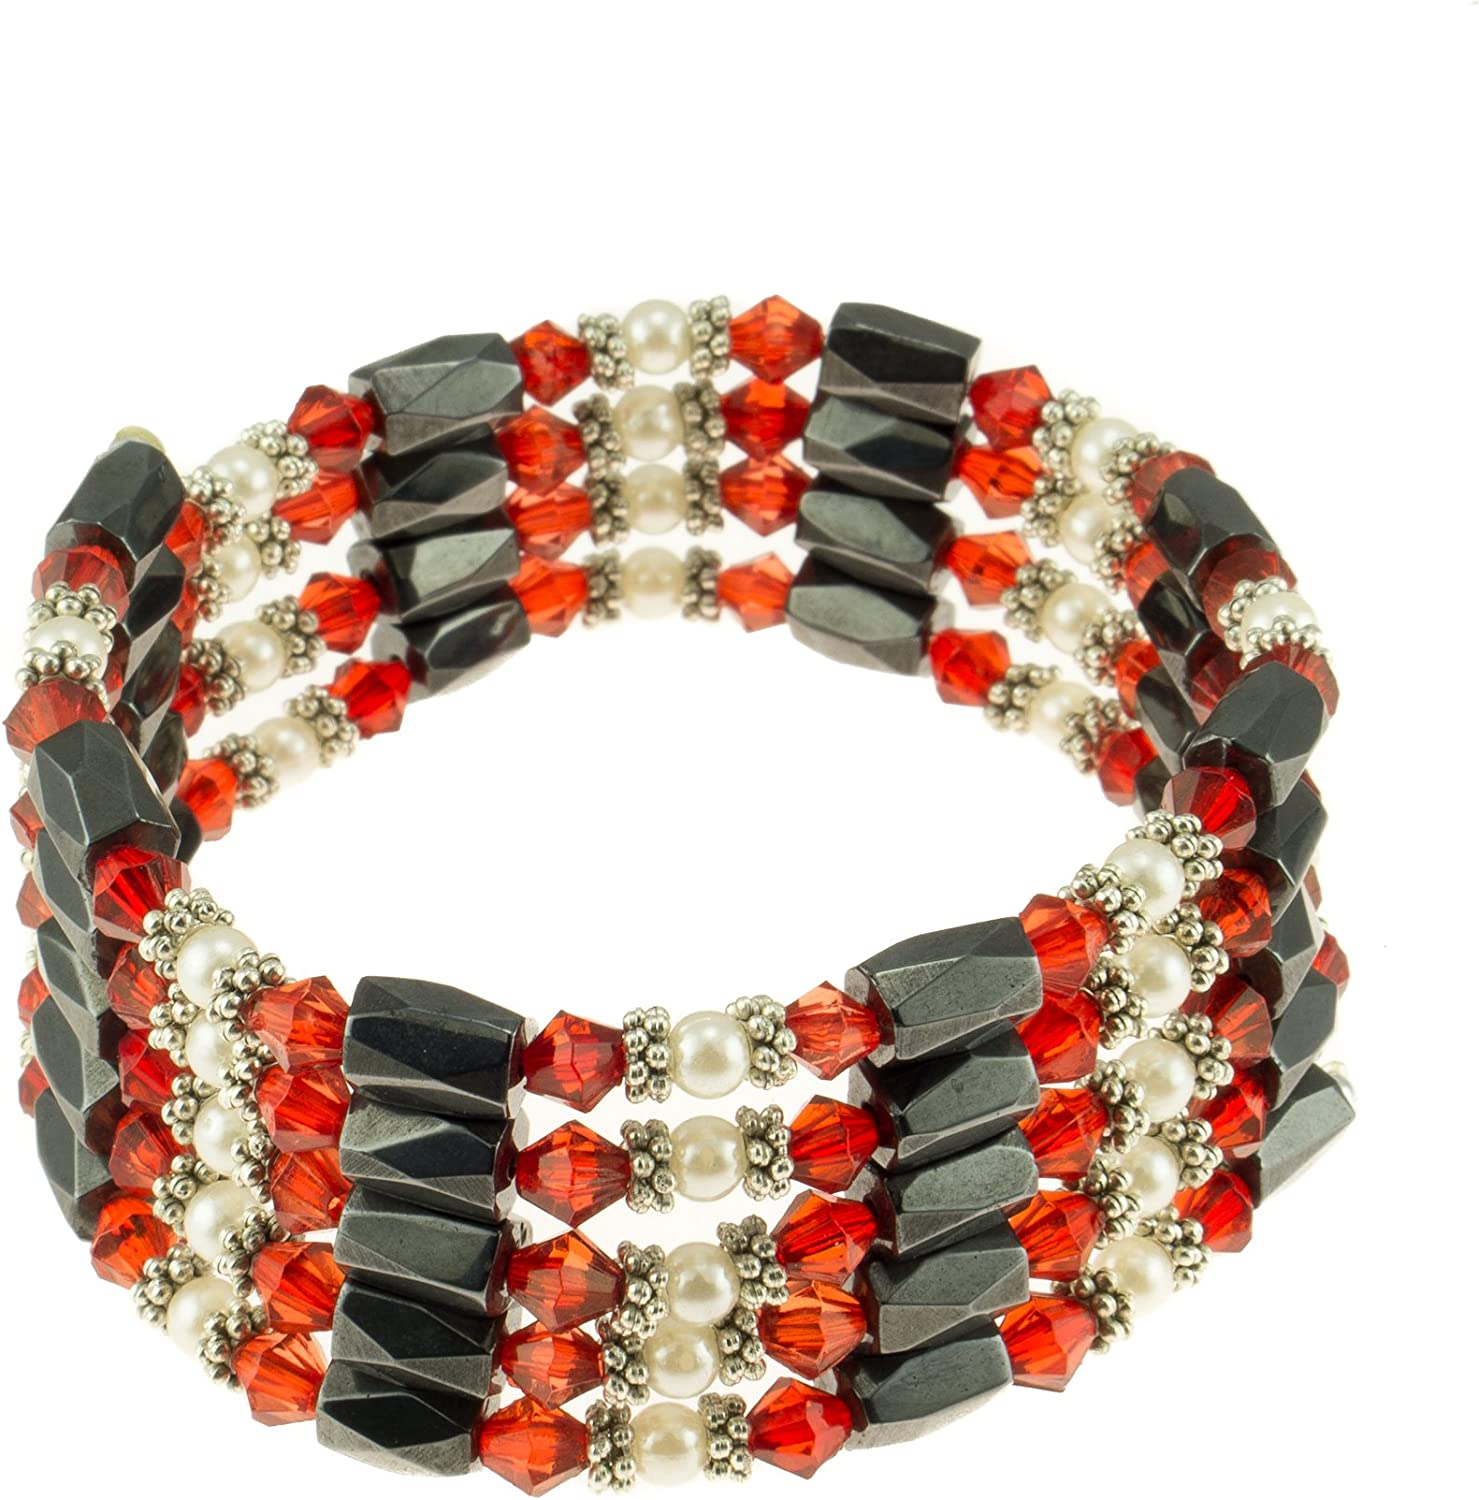 Magnetic Hematite Beaded Wrap Bracelet Anklet or Necklace with Genuine Fresh Water Pearls /& Red Beads BlueRica BR36MGPRLRD1